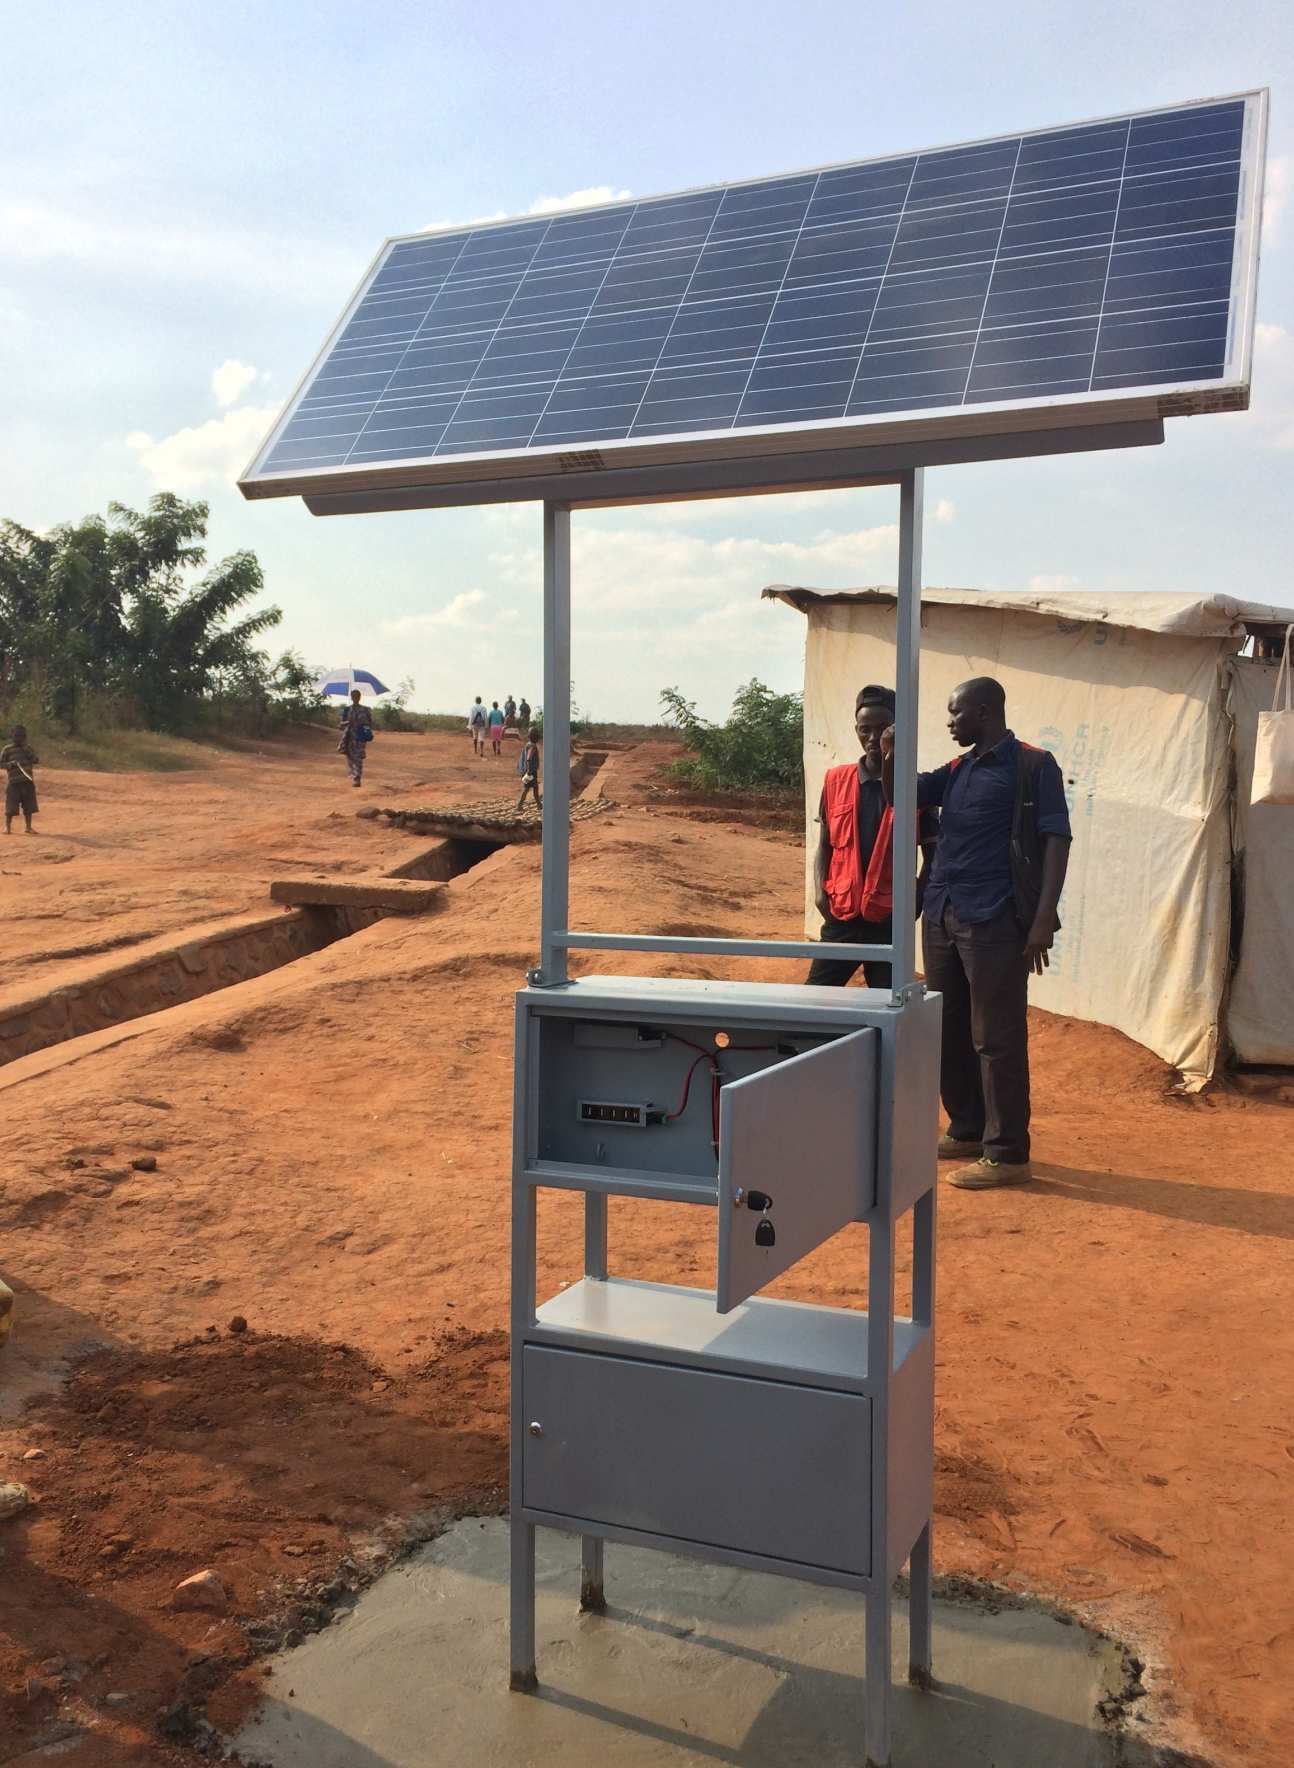 An Elpis Solar charging station